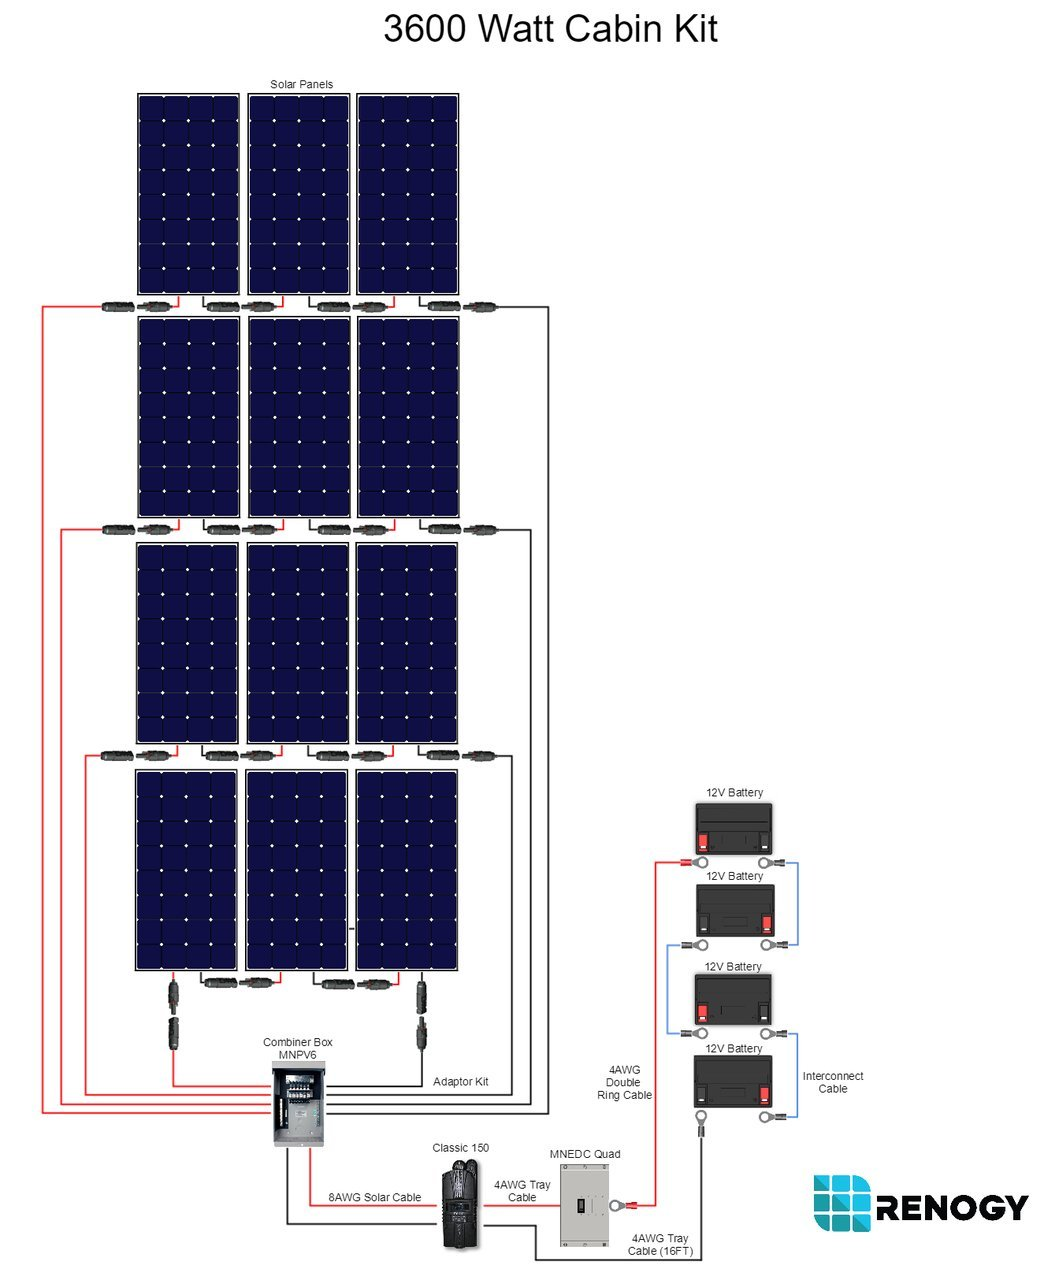 Mnpv6 Solar Combiner Box Wiring Diagram Essig Do Panels Work How Energy Panel Amazon Com Renogy 3600 Watt Monocrystalline Cabin Kit For